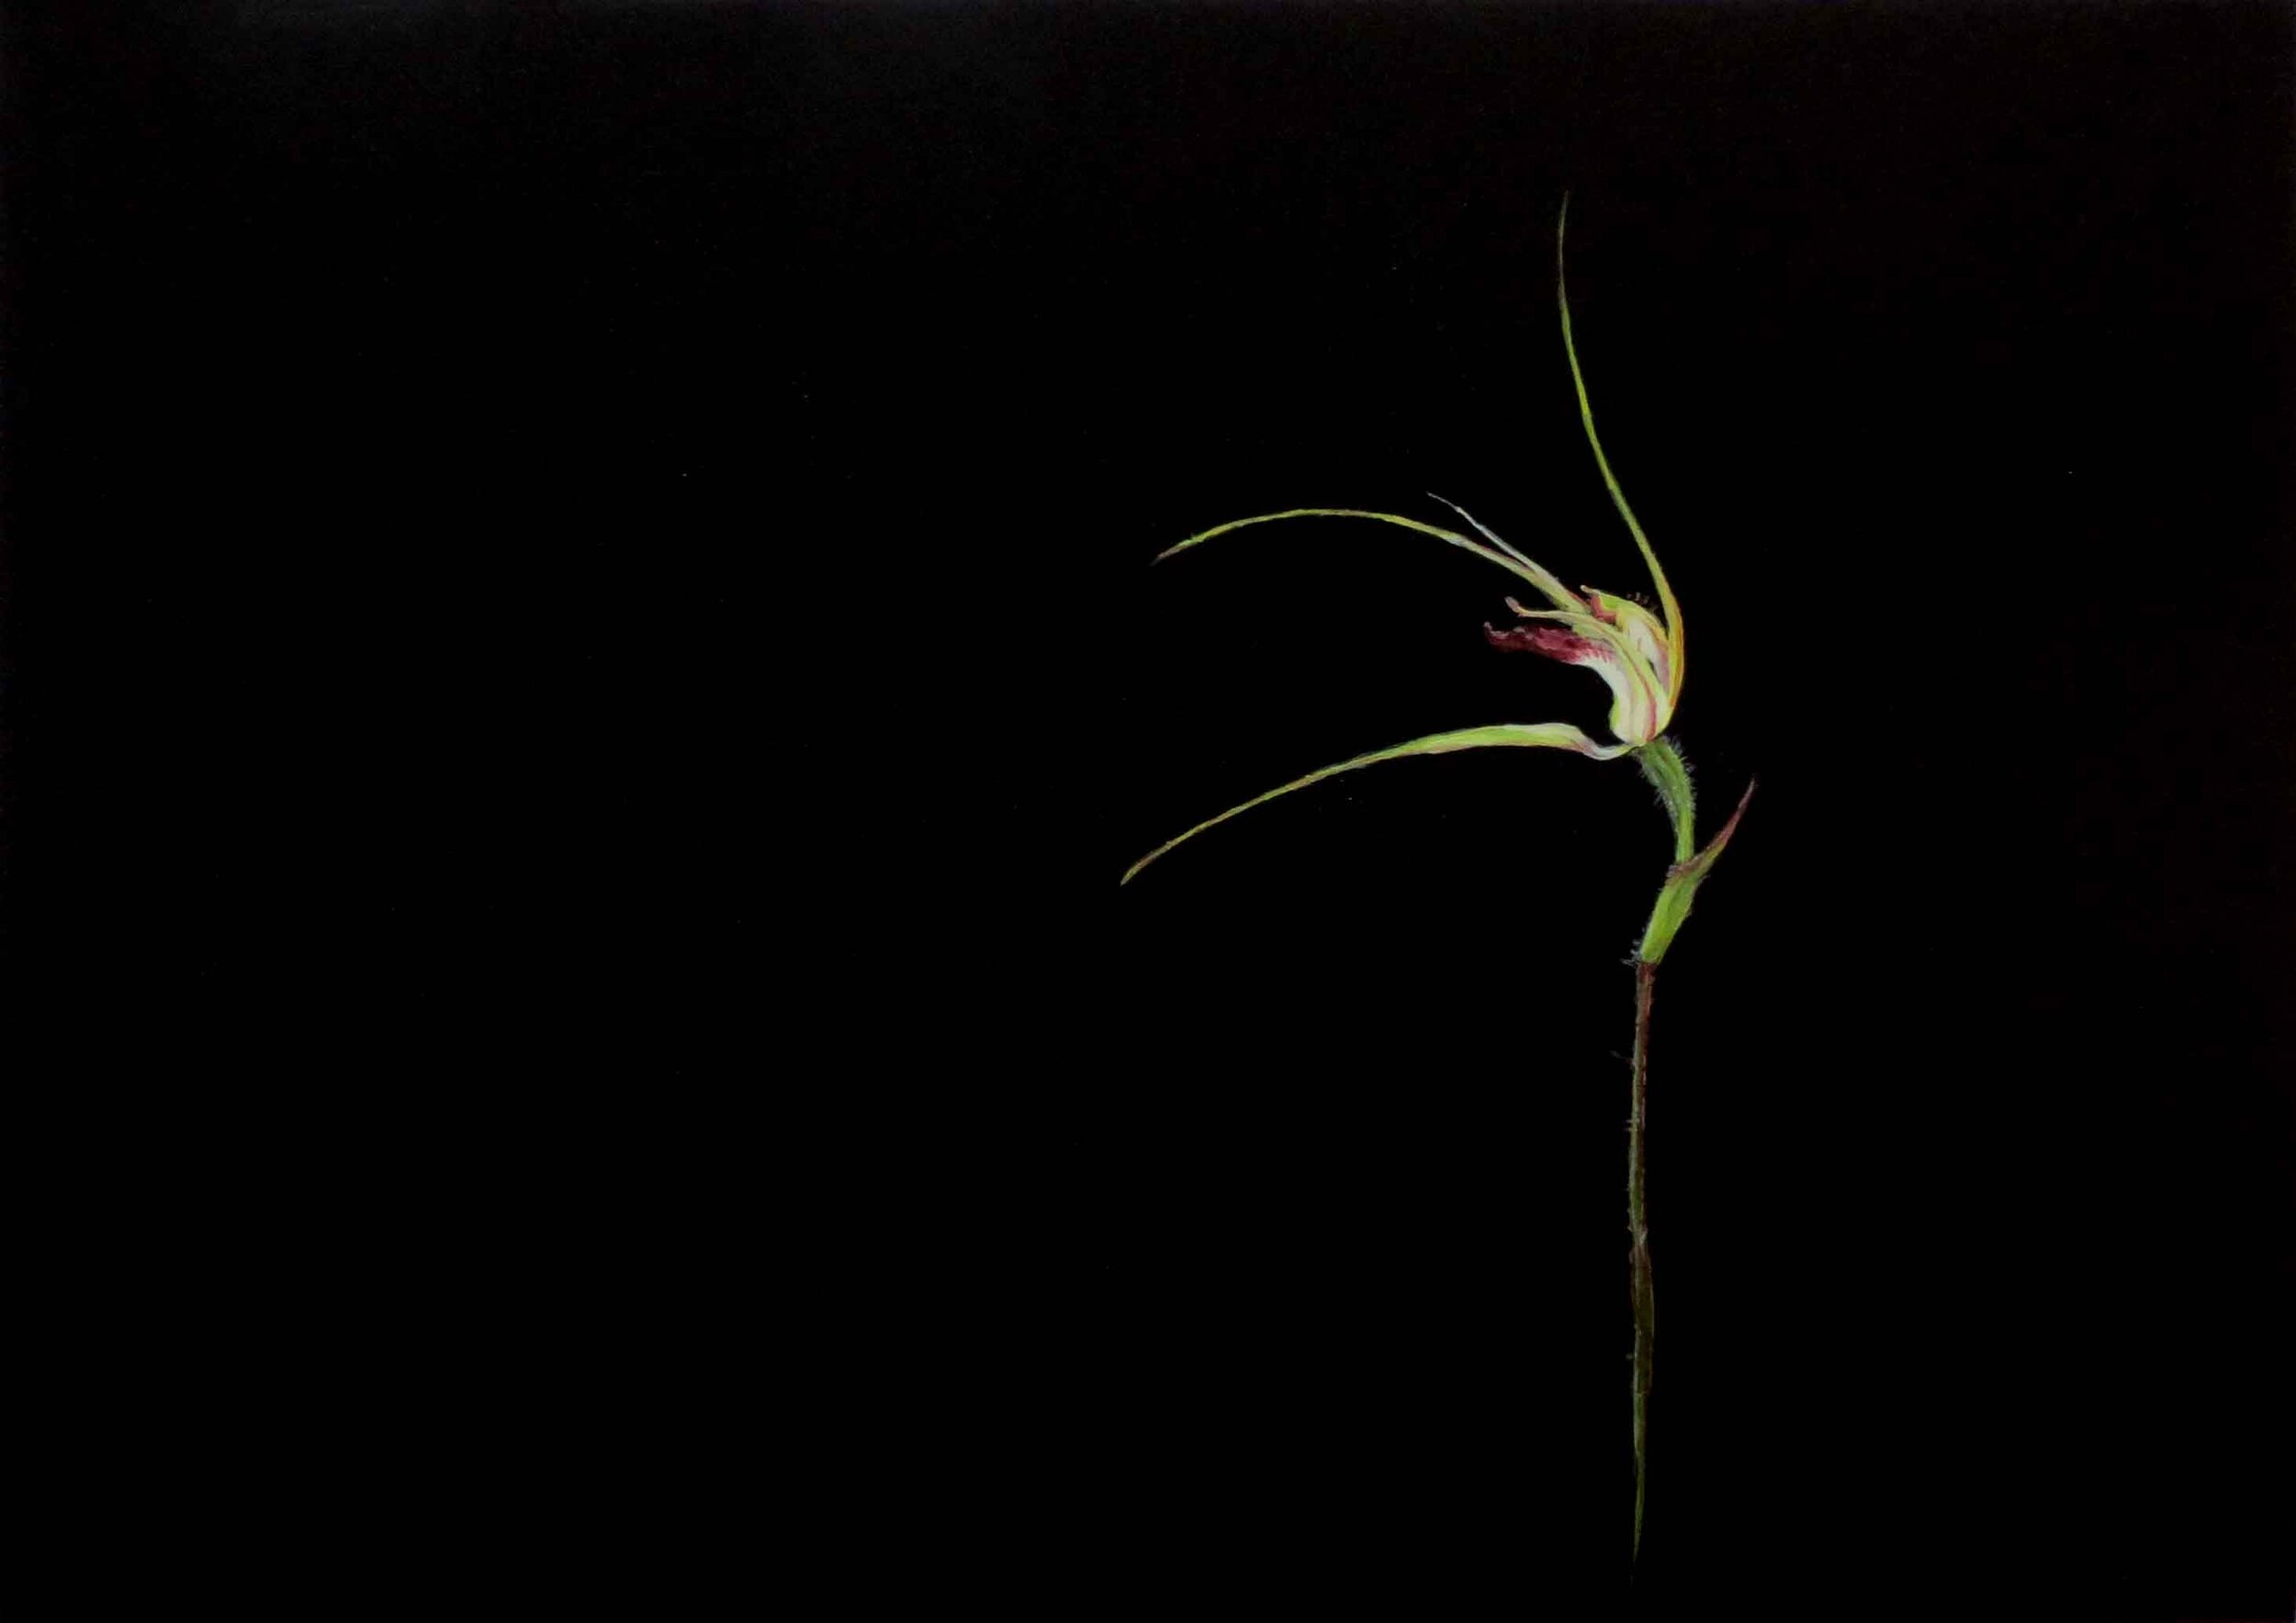 69. Clare McFarlane, Carousel Spider Orchid - study 2, 2019, acrylic on paper, 29.7 x 42 cm $275